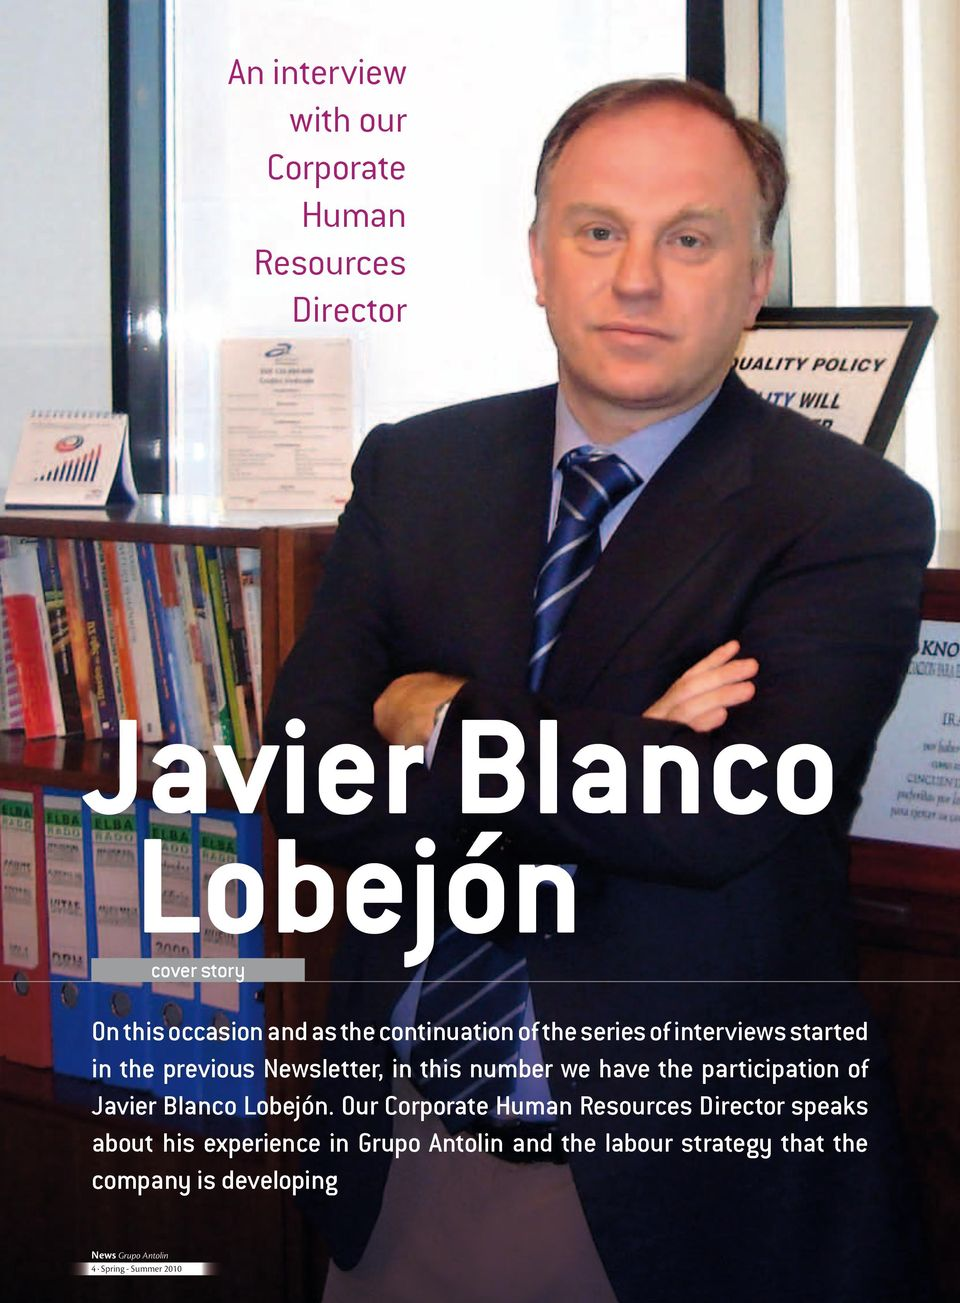 previous Newsletter, in this number we have the participation of Javier Blanco Lobejón.